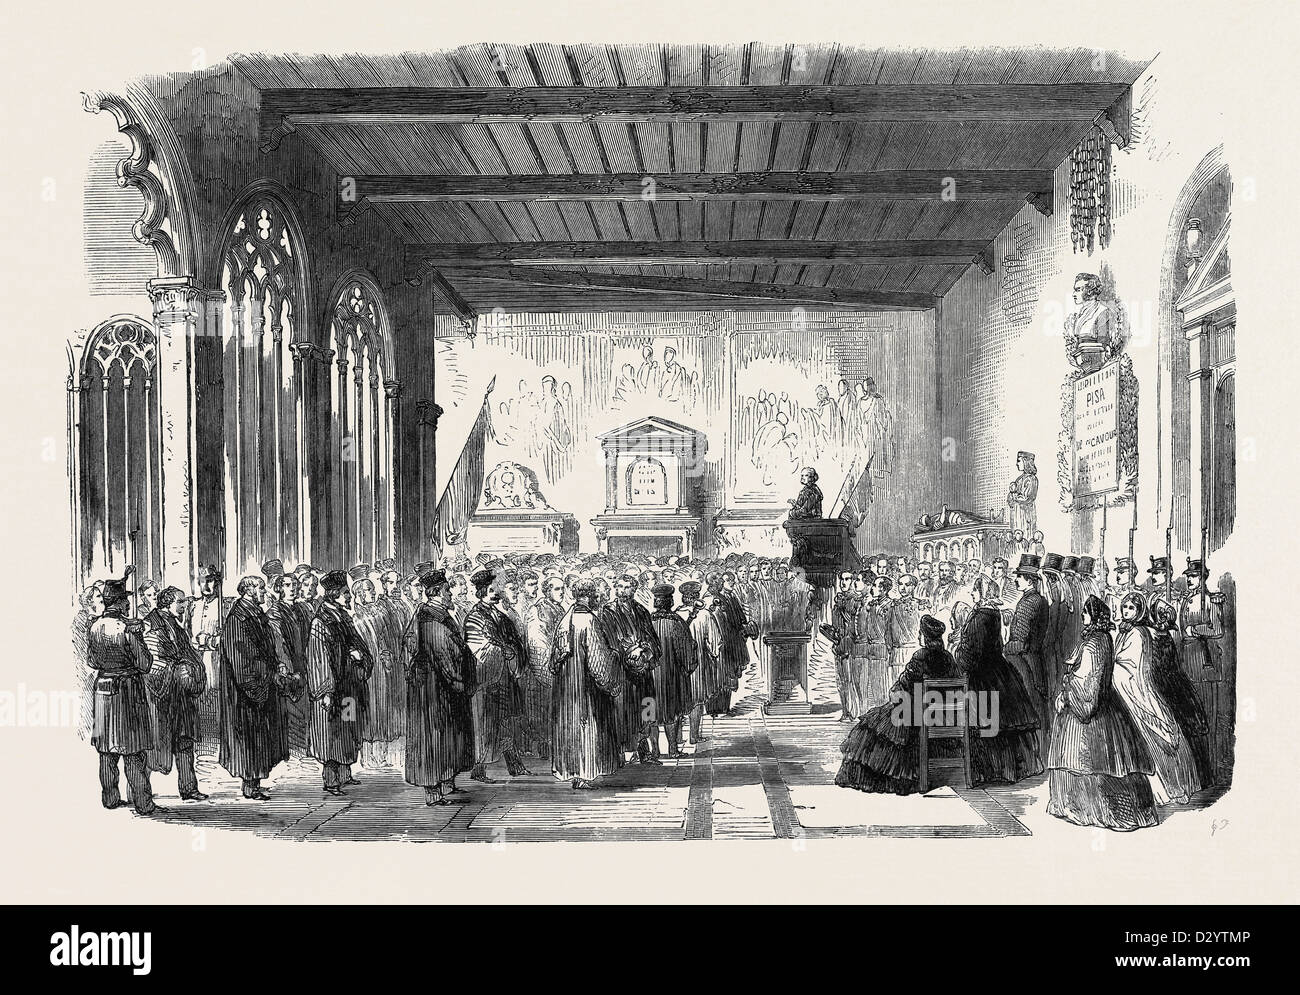 INAUGURATION OF CAVOUR'S MONUMENT IN THE CAMPO SANTO AT PISA JULY 20 1861 - Stock Image